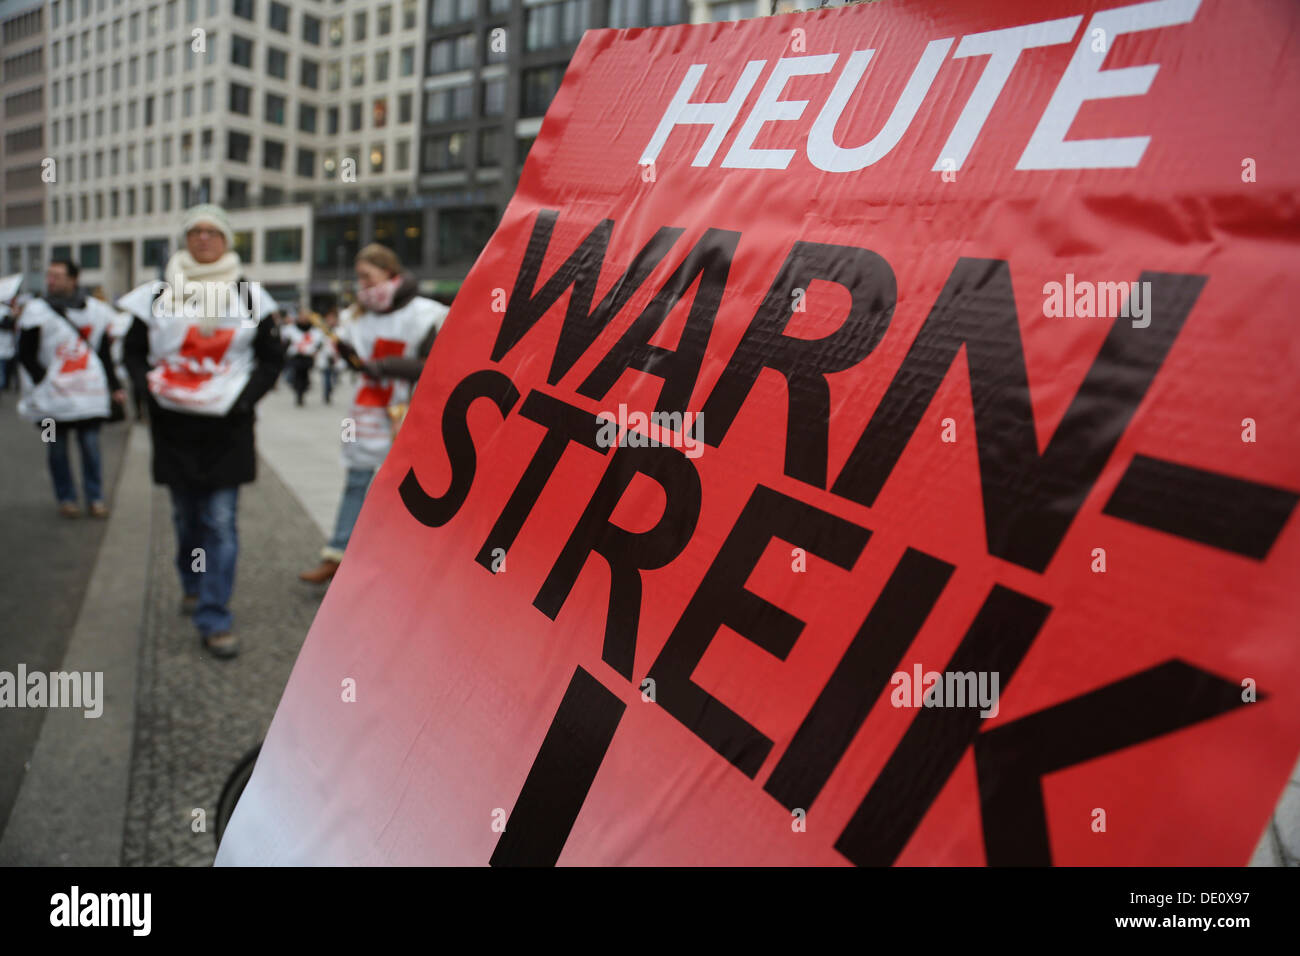 Warning strike in the public service sector, Berlin teachers striking for better working conditions - Stock Image